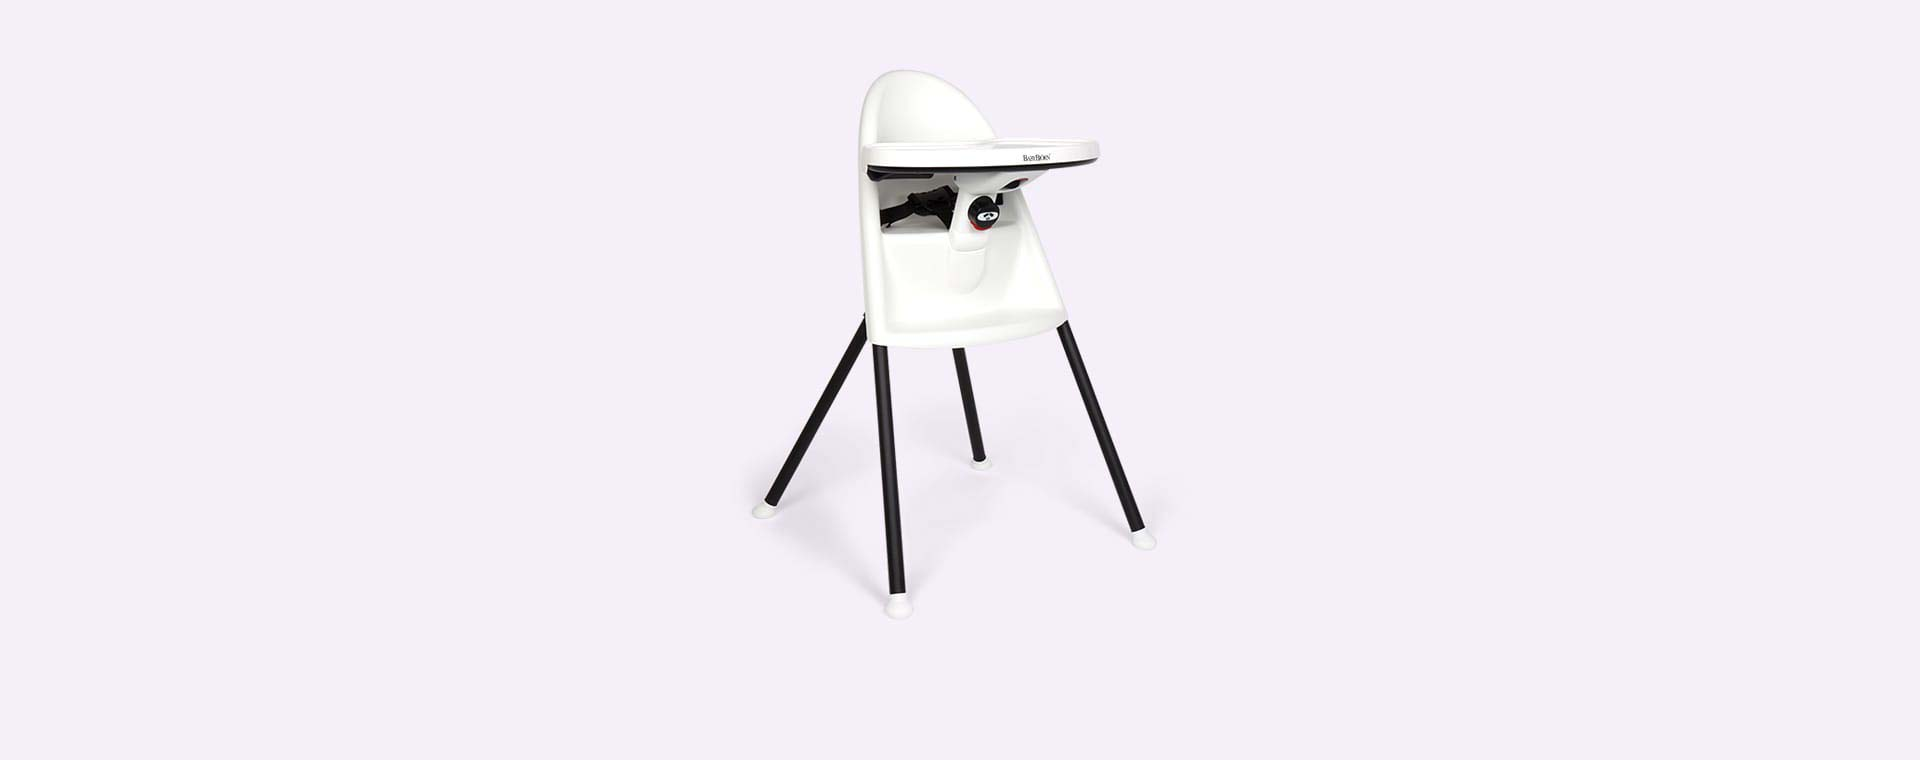 White BabyBjorn Highchair